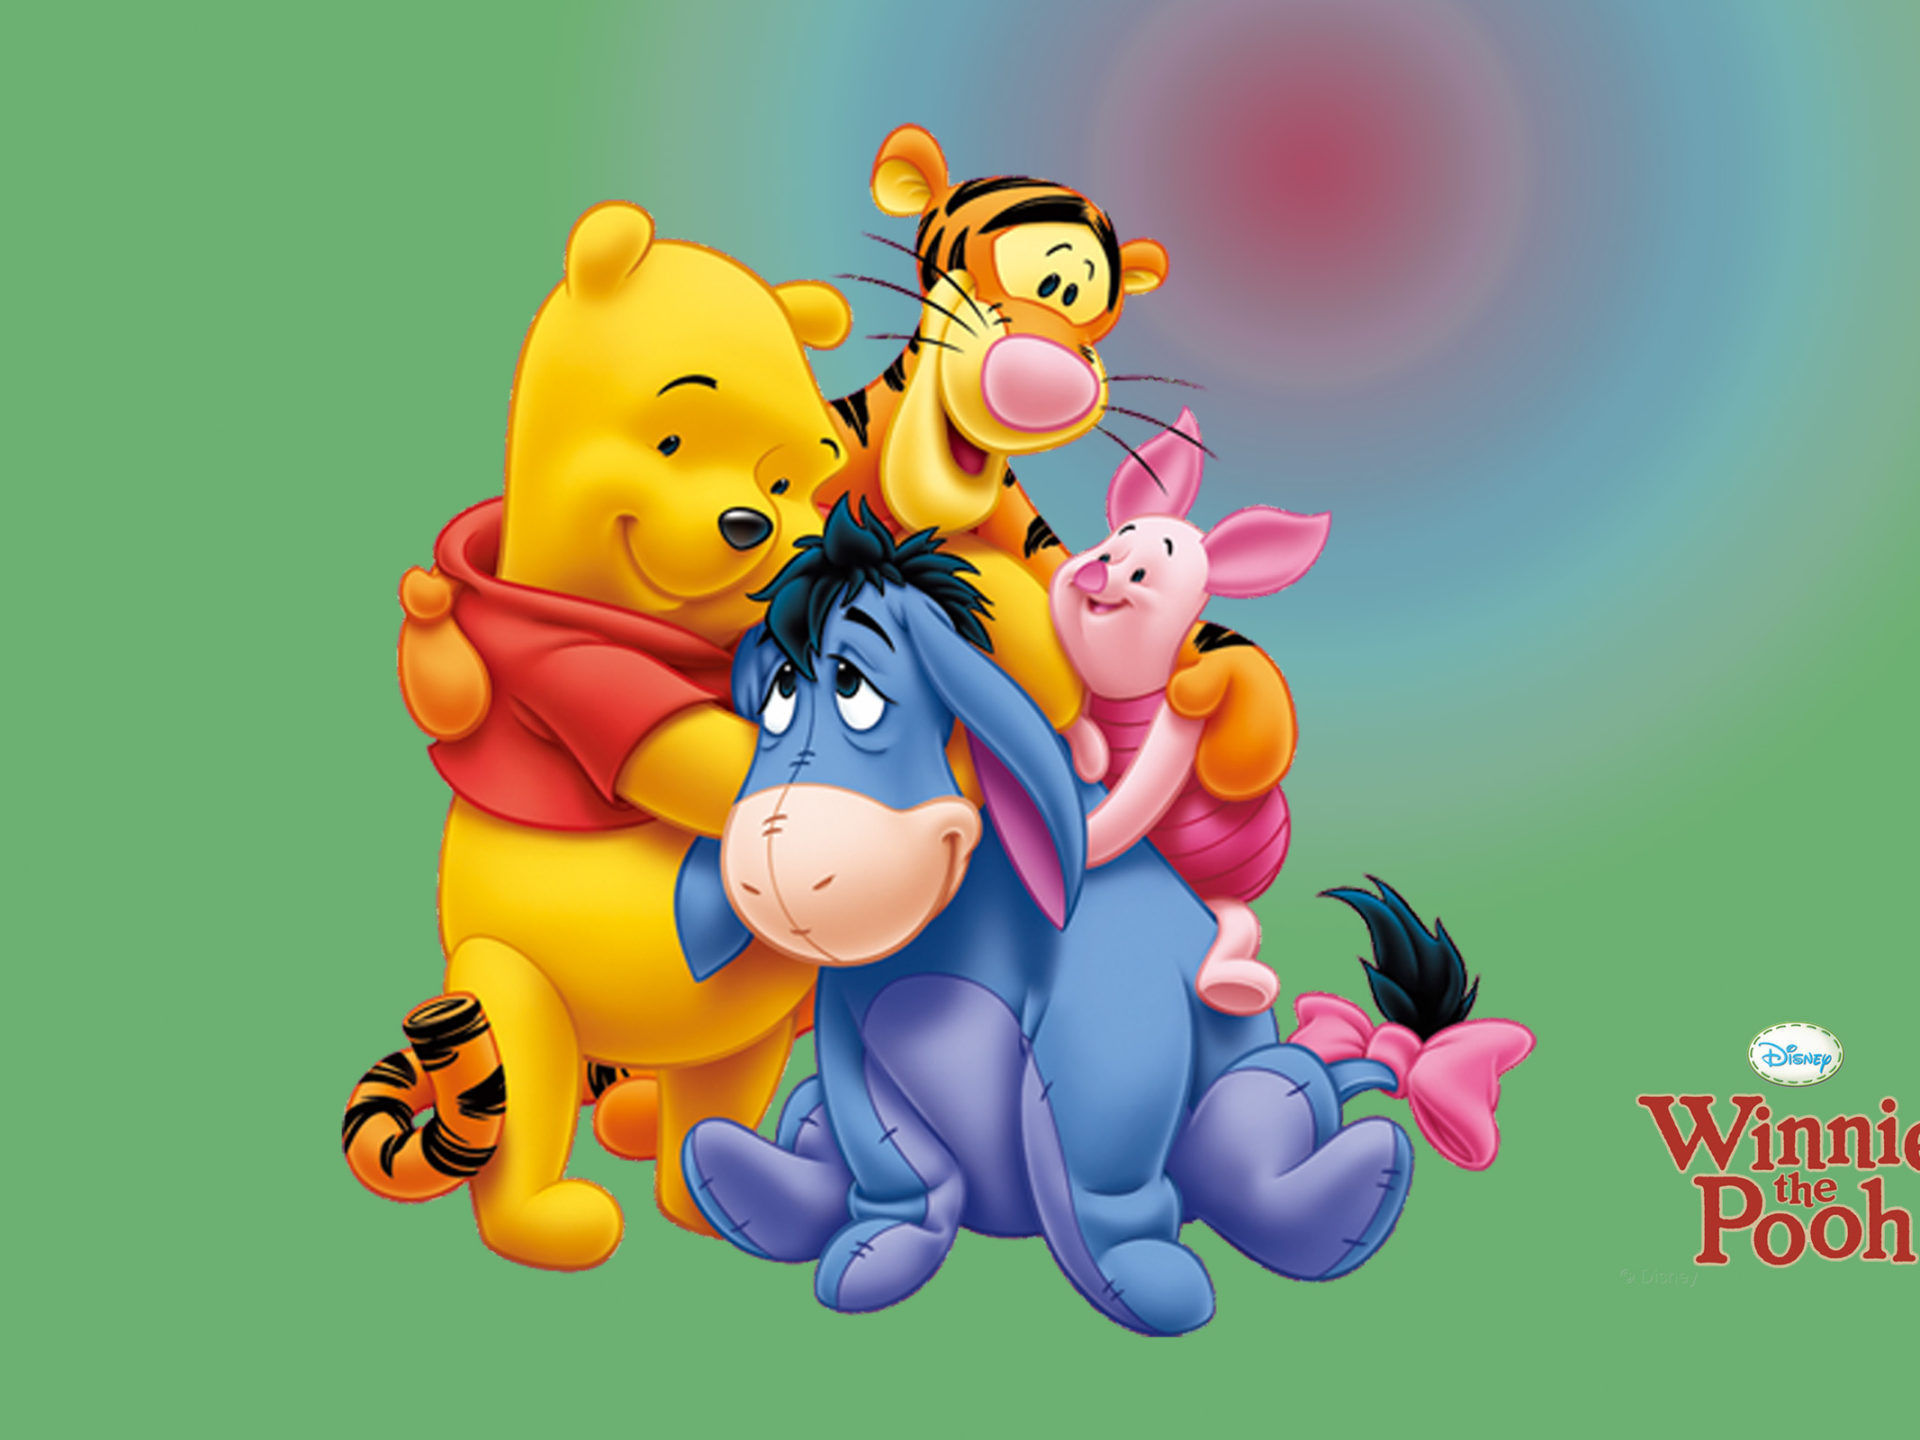 Winnie The Pooh And Friends Cartoon Image For Desktop Hd